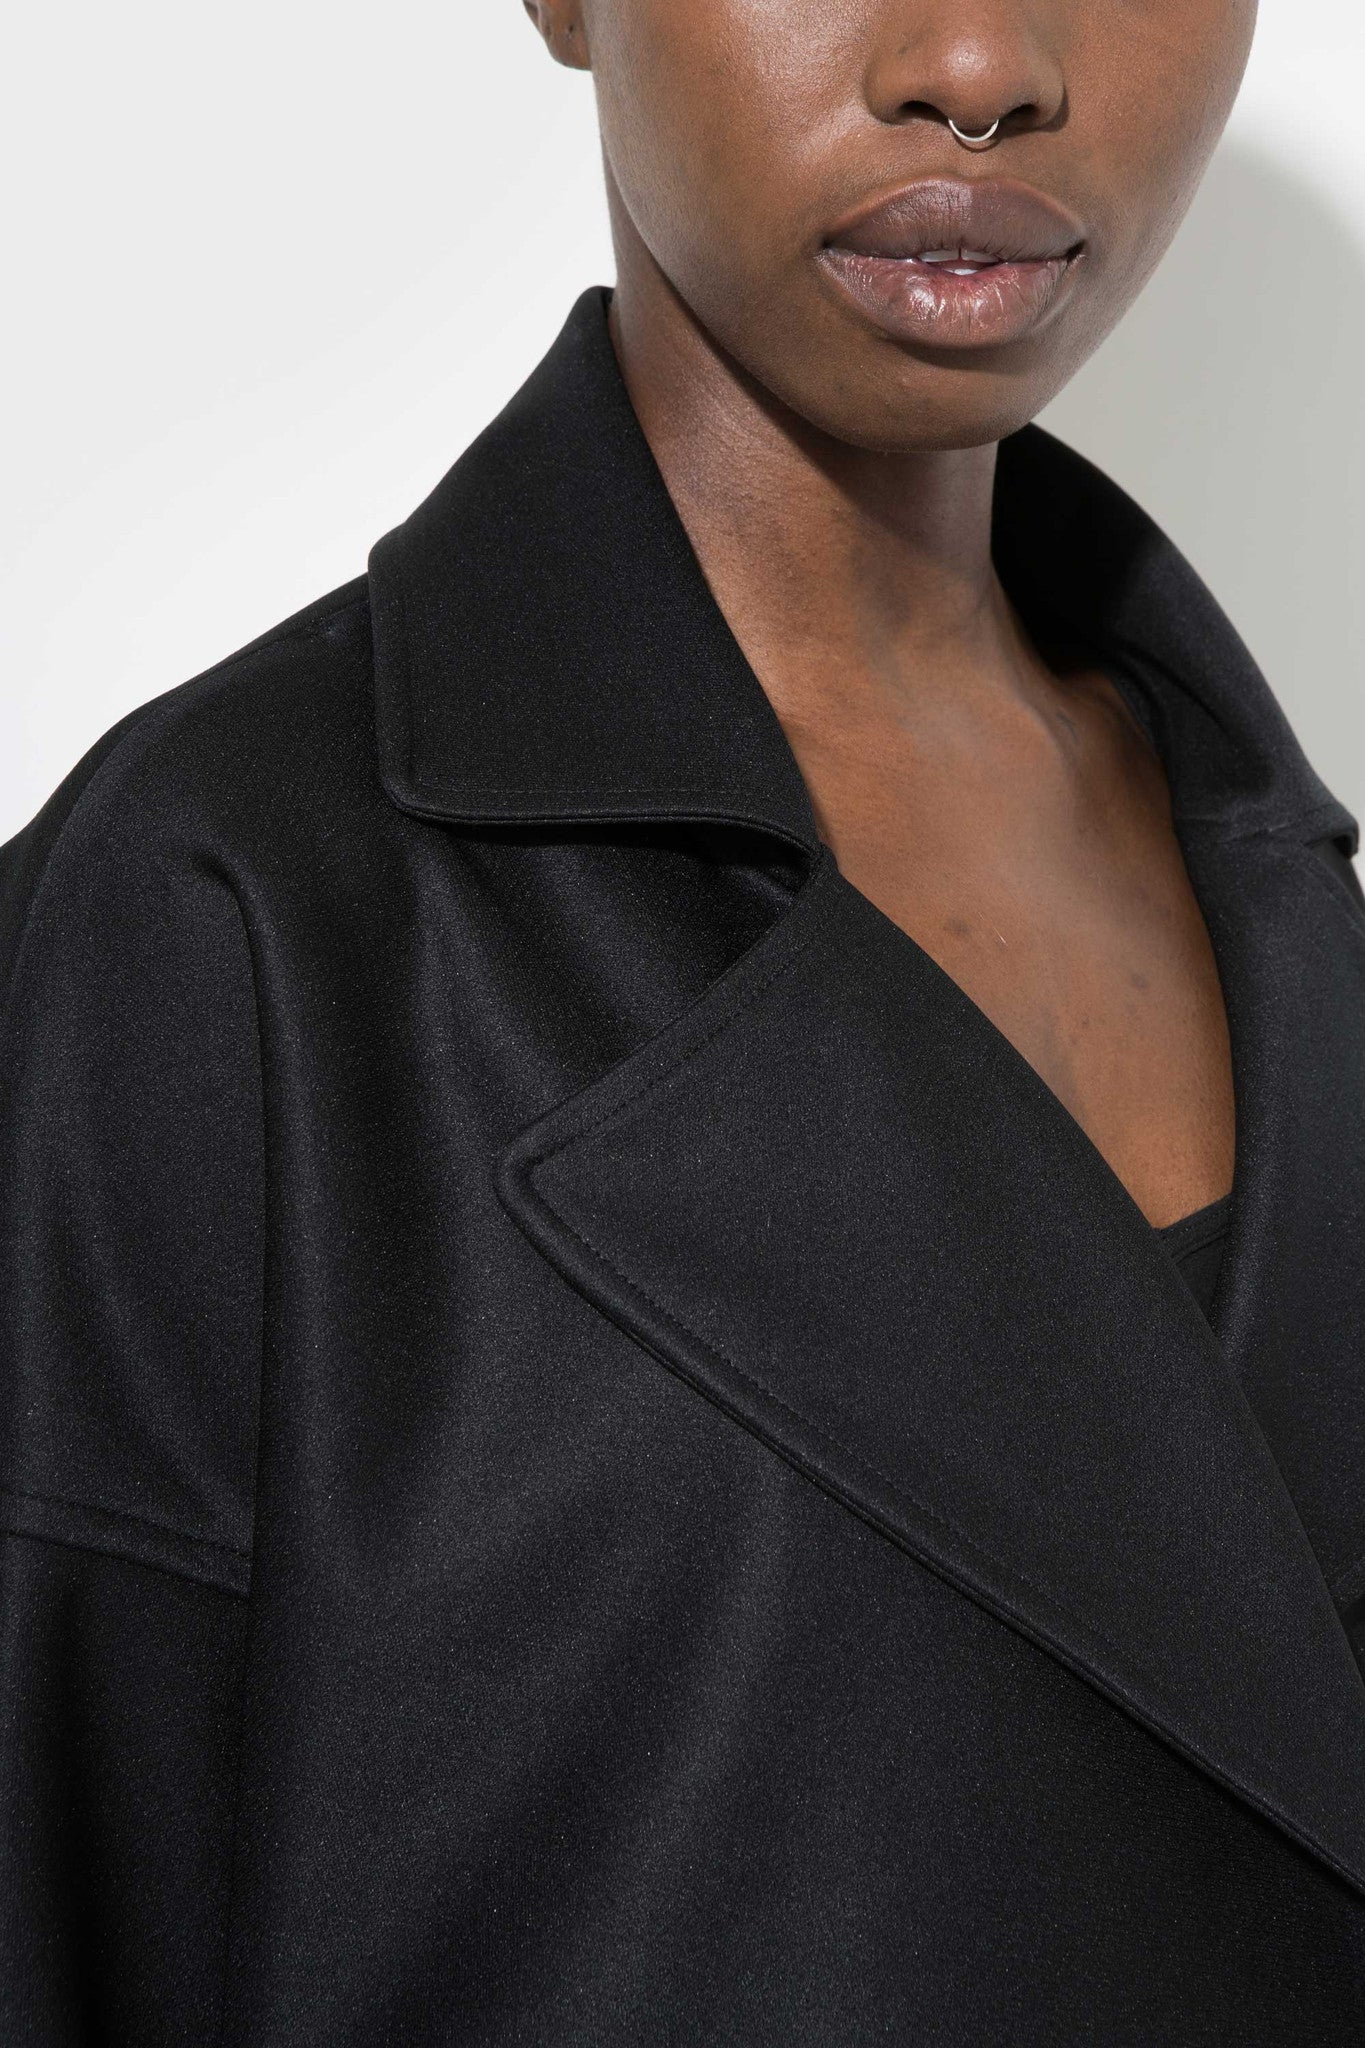 Catherine coat is oversized and slouchy, sporty coat designed by Enda